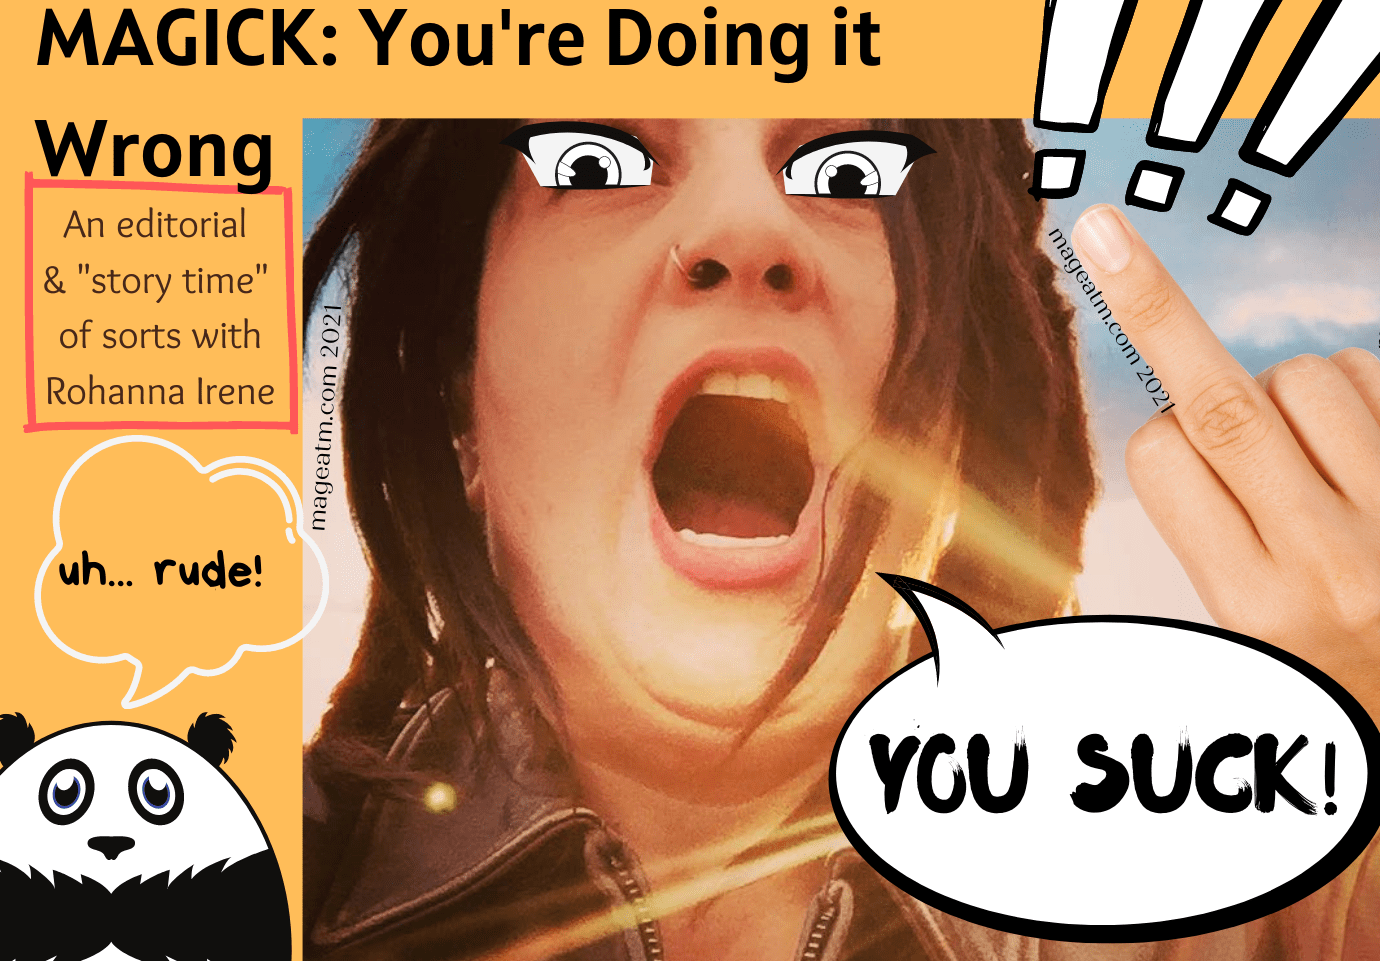 """A blog header designed in some weeb like shit-posting style. It includes the title of the blog: MAgick: You're doing it wrong. / An editorial and story time of sorts with Rohanna Irene. Then there is a picture of the author, Rohanna with a fake digitally added hand. It has the ring finger up, but at first glance looks like the middle finger. A comment bubble is directed from her showing her saying YOU SUCK while she stares down with added anime eyes (black and white in color) and a few additional artistic additions. In the left corner there is a cartoonish panda standing there with a thought bubble over his head that says, """"Uh, rude!"""" There is also a disclaimer at the bottom basically saying that the podcast doesn't mean offense and it is satire. Blah blah blah. Blessed Be!"""